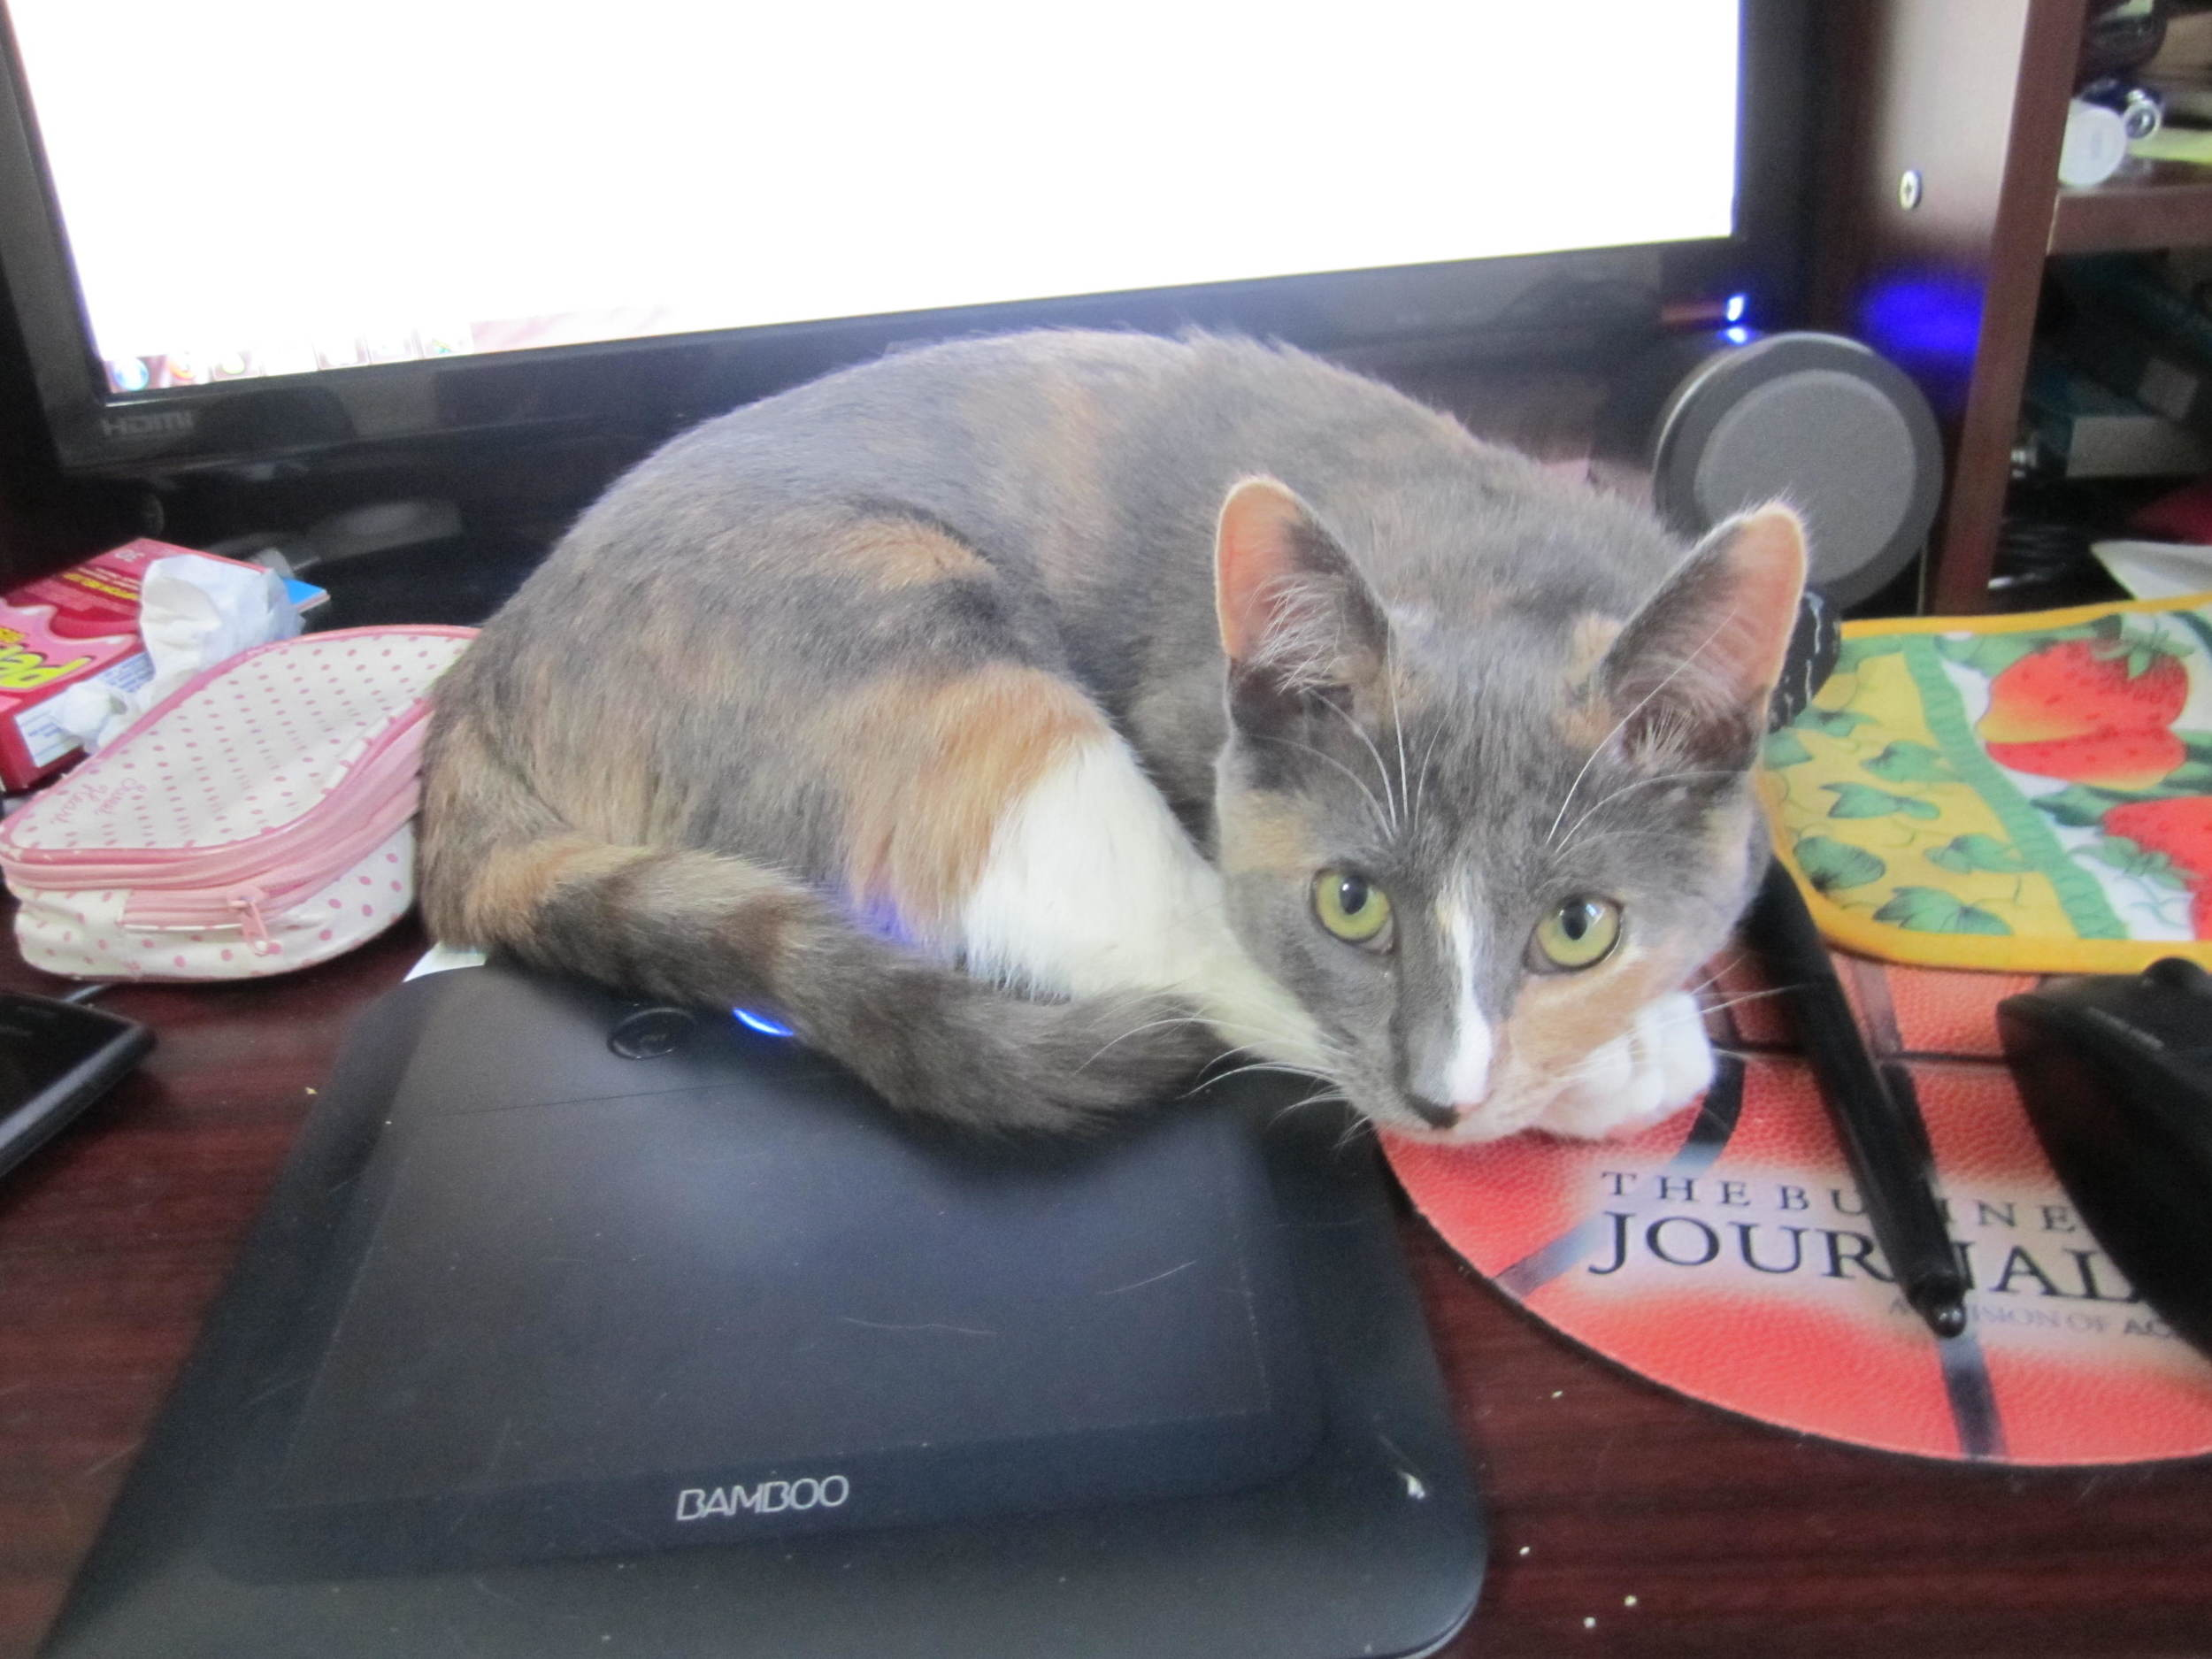 She used to follow me everywhere and loved to sit on my desk to get my attention. Isn't she adorable?